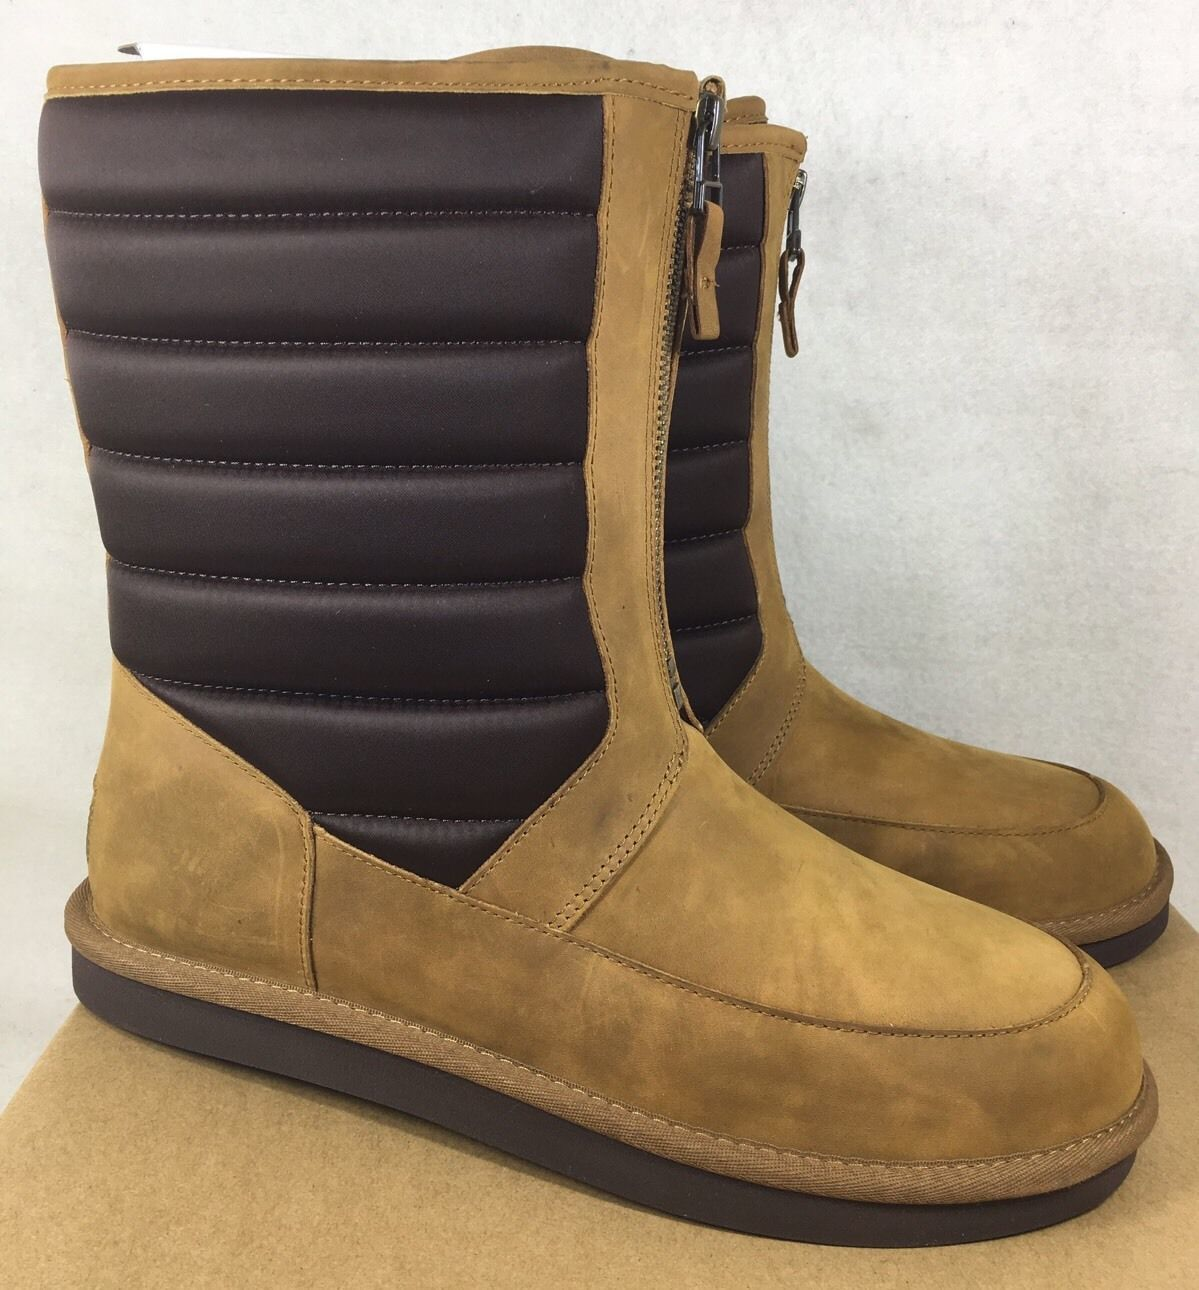 fcaac92e6ef Ugg Australia Chestnut Zaire Water Resistant and 13 similar items